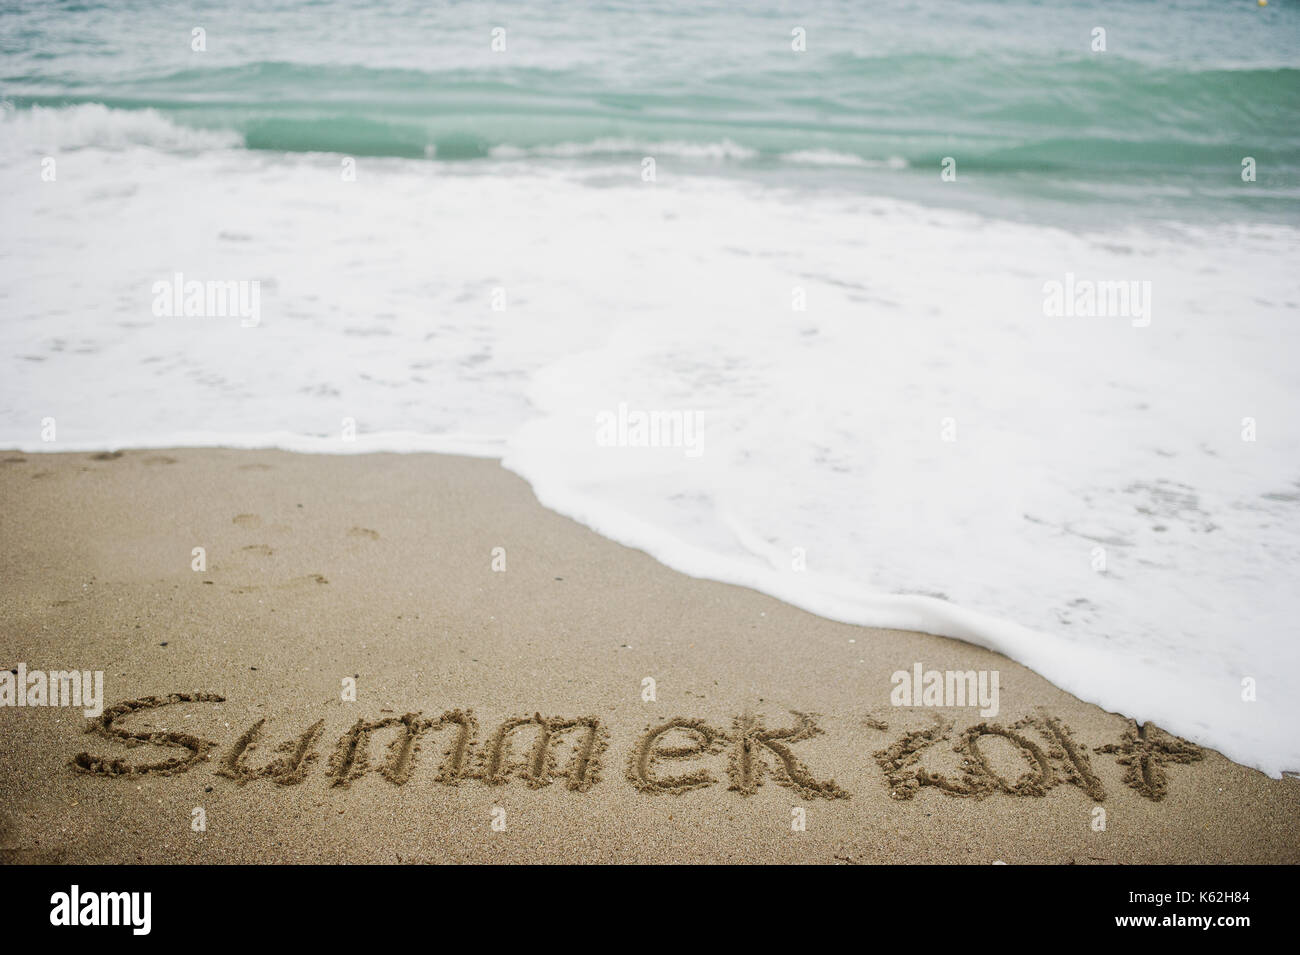 Perfect Summer 2017 End. New Year 2018 Is Coming Concept. Sea And Sand.